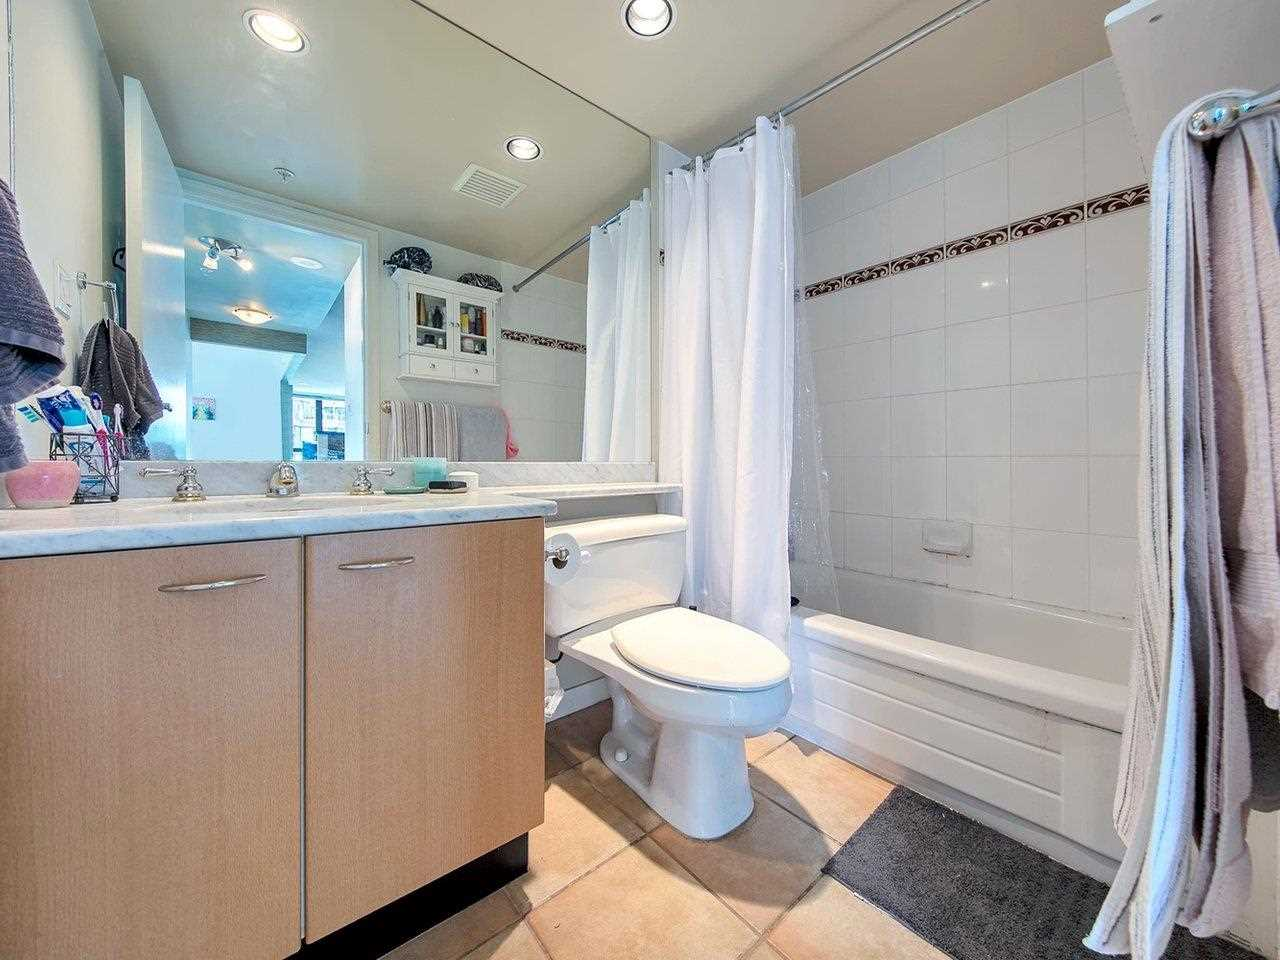 2701 1331 ALBERNI STREET - West End VW Apartment/Condo for sale, 3 Bedrooms (R2576100) - #17